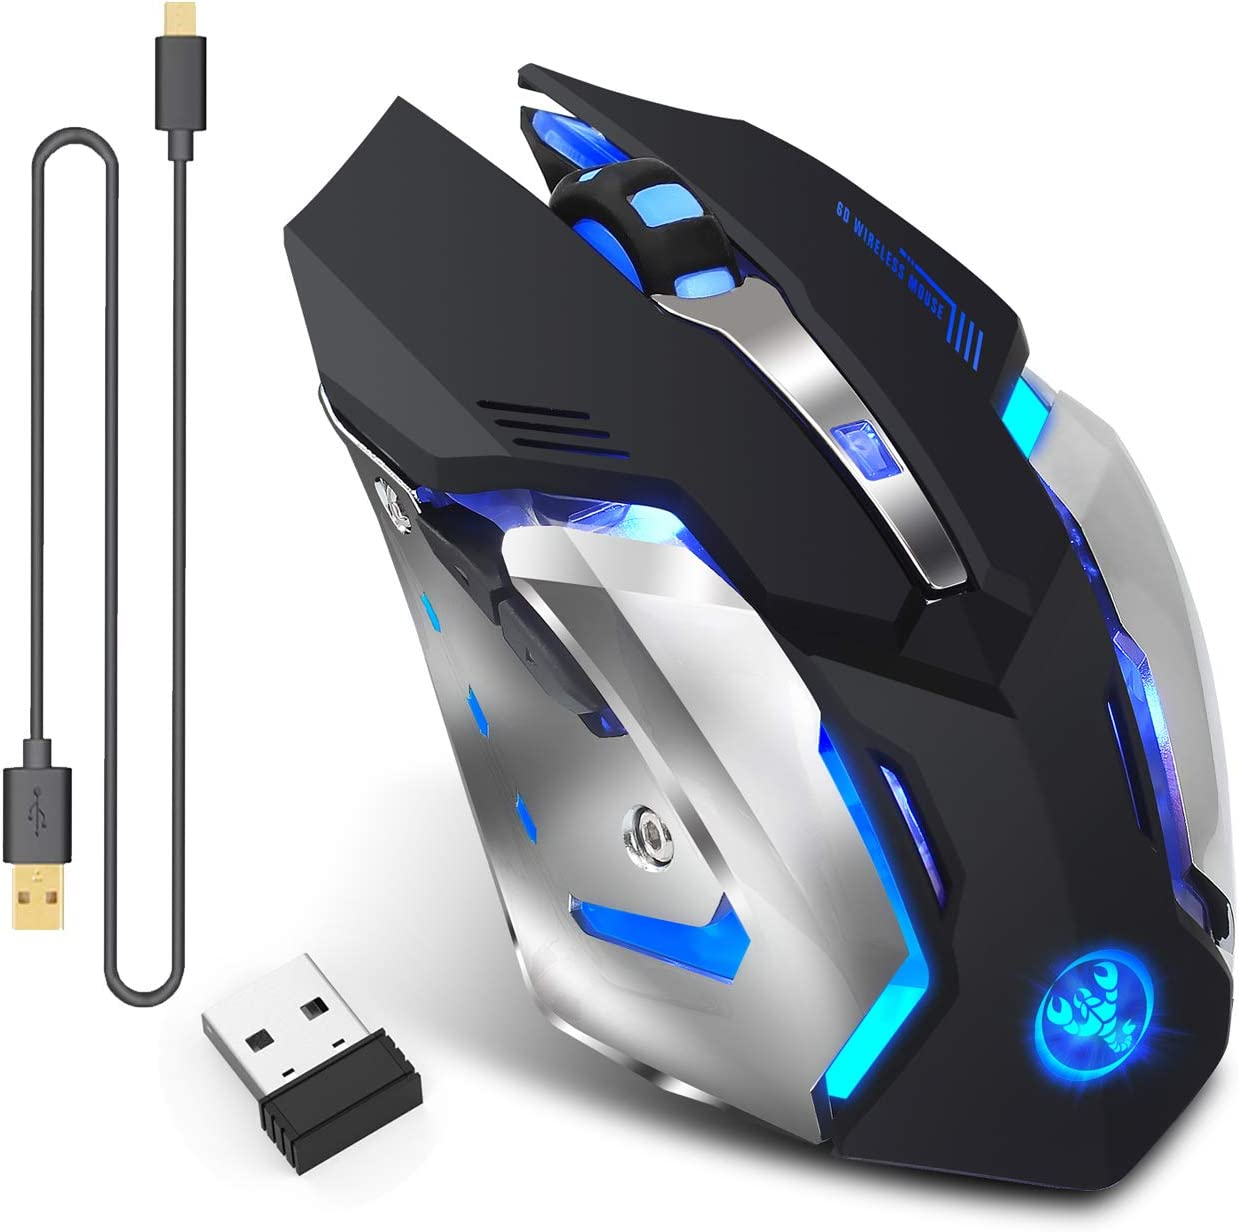 LED Light Gaming Mouse Wireless Rechargeable USB 2.4GHz Breathing Backlit